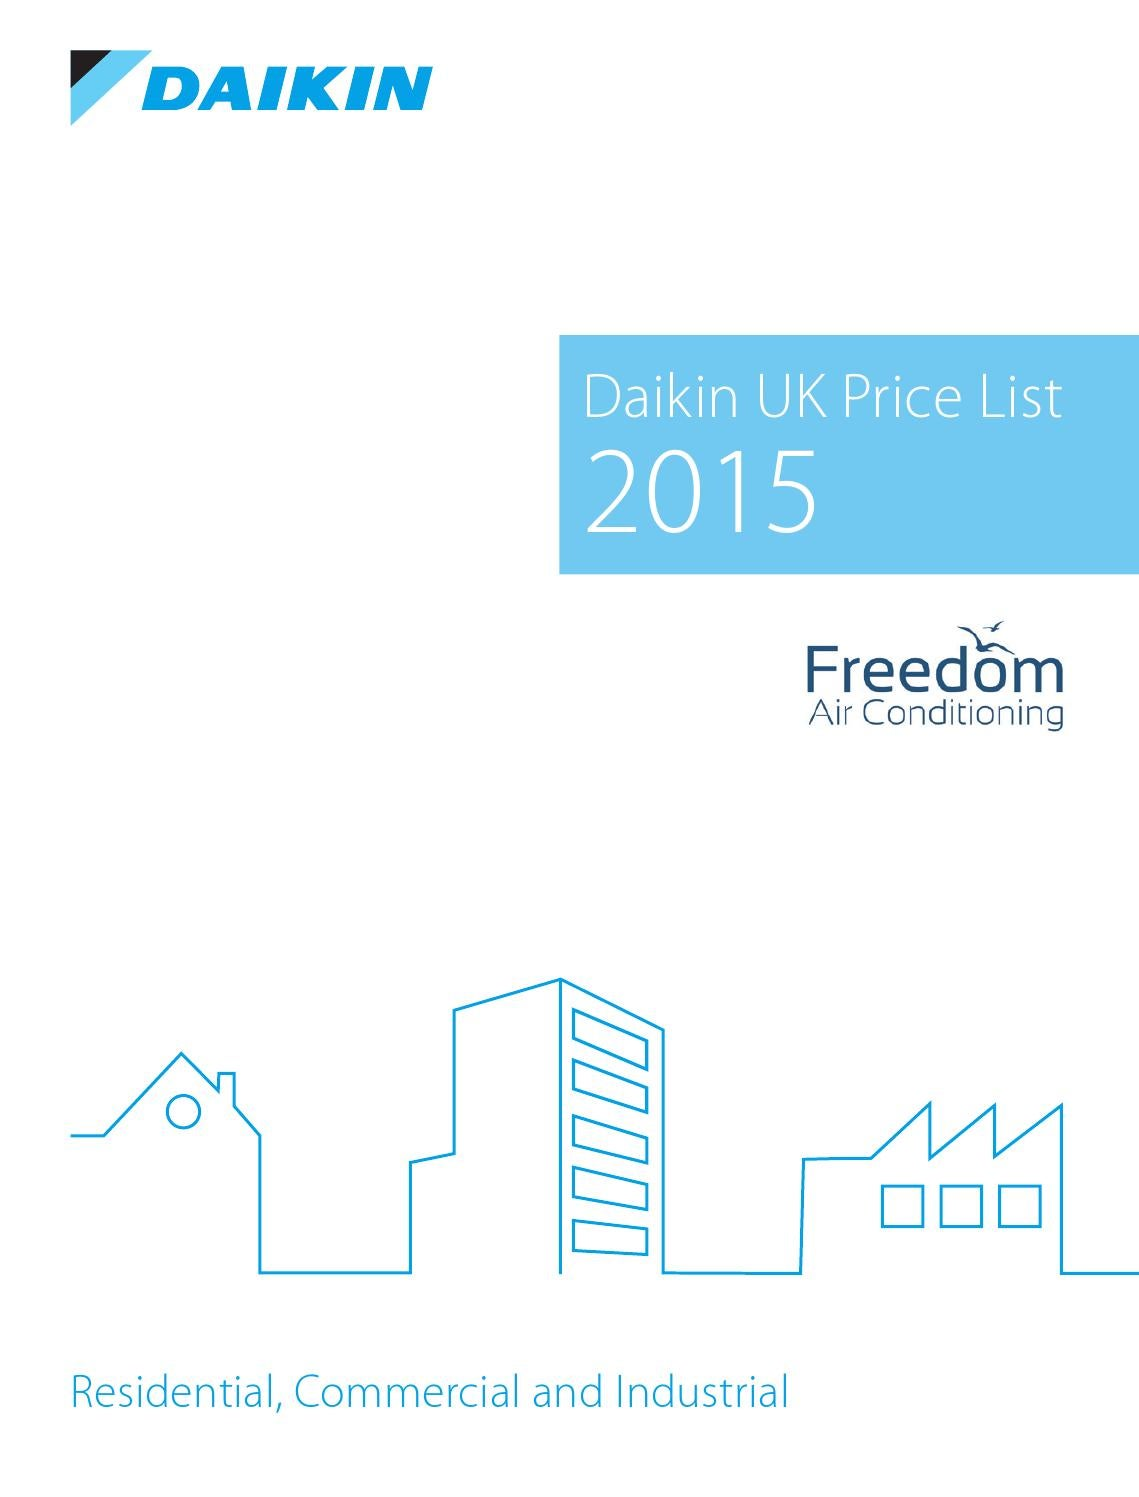 Freedom Ac Daikin 2015 Pricelist By Air Conditioning Issuu Board Service Test 1defrost Thermostat Defrost Circuit